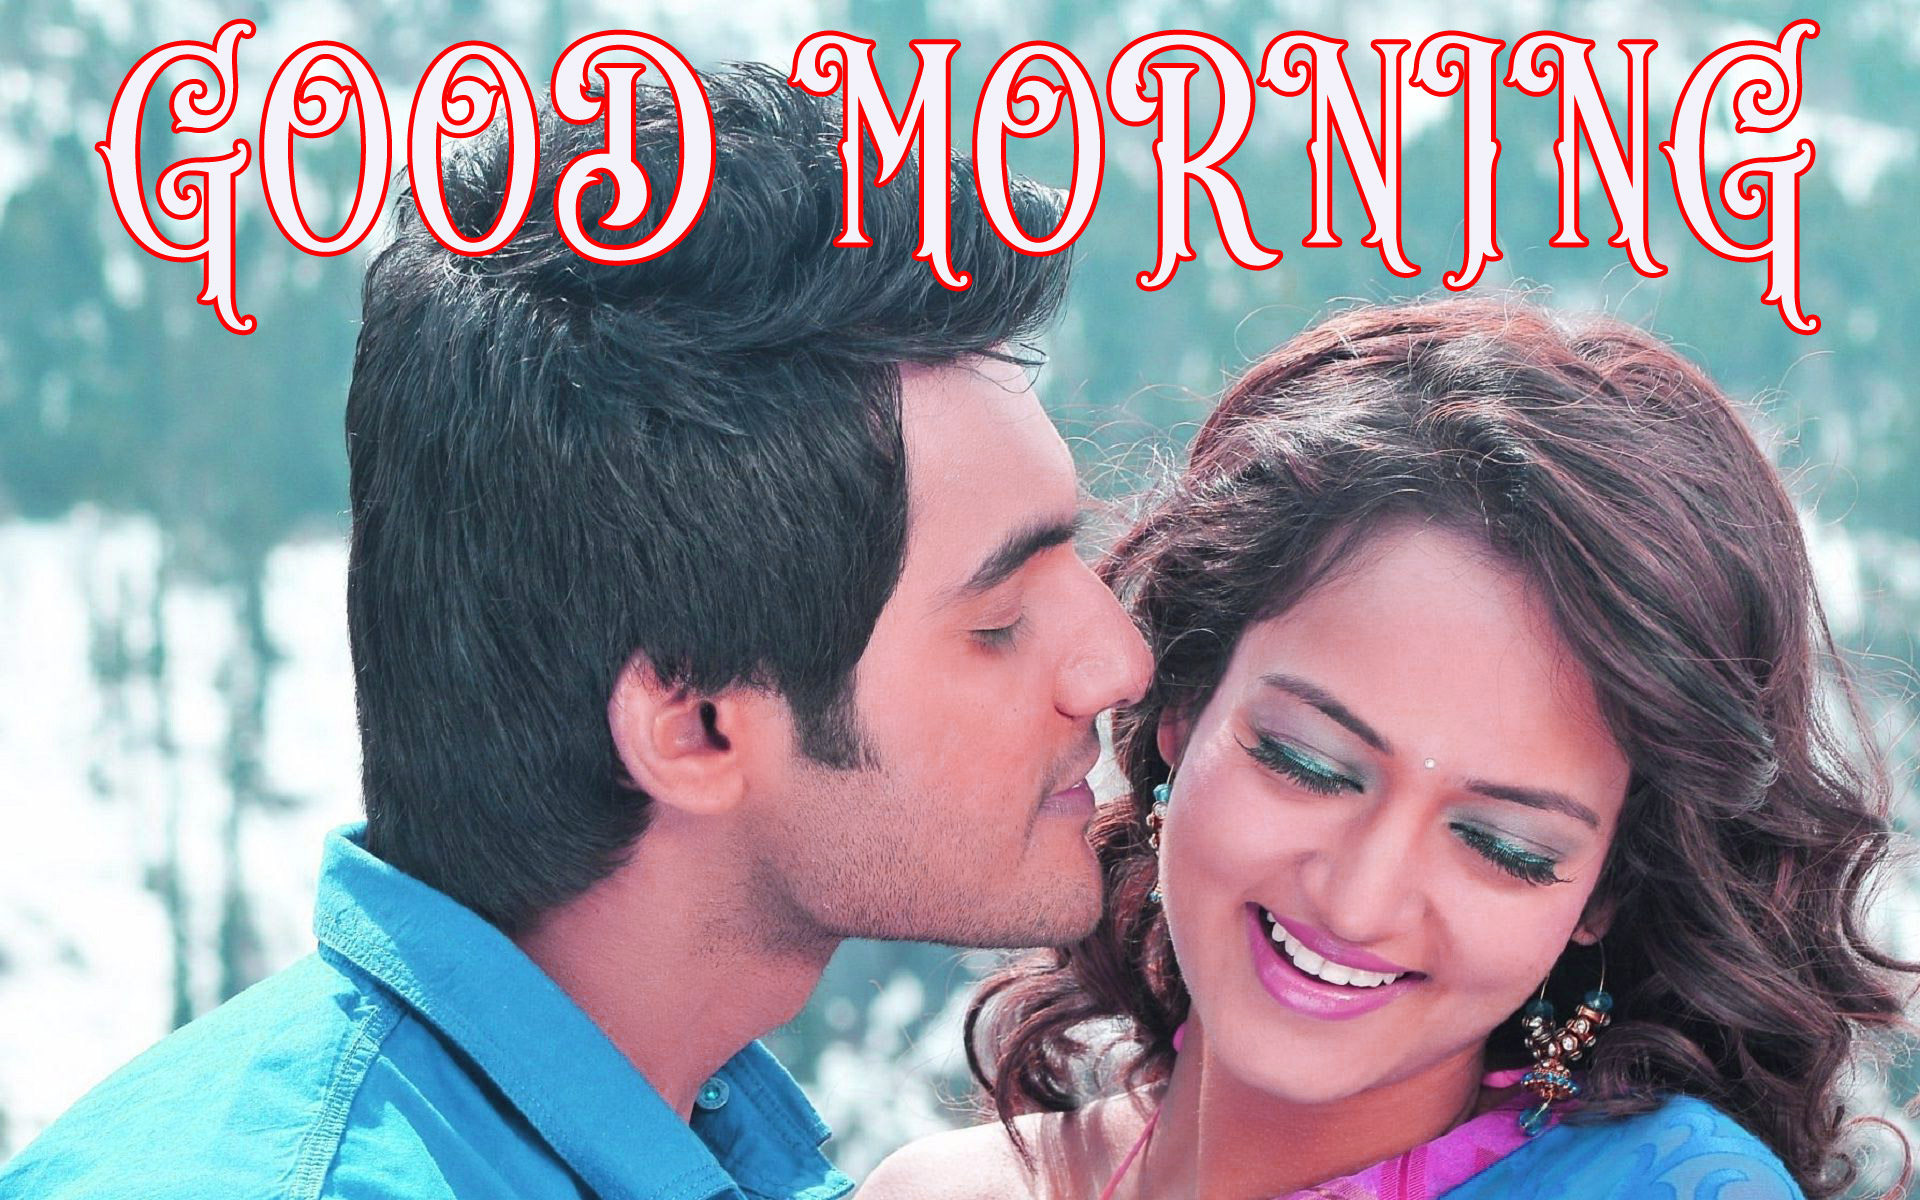 New Lover Good Morning Images Pictures Download for Facebook